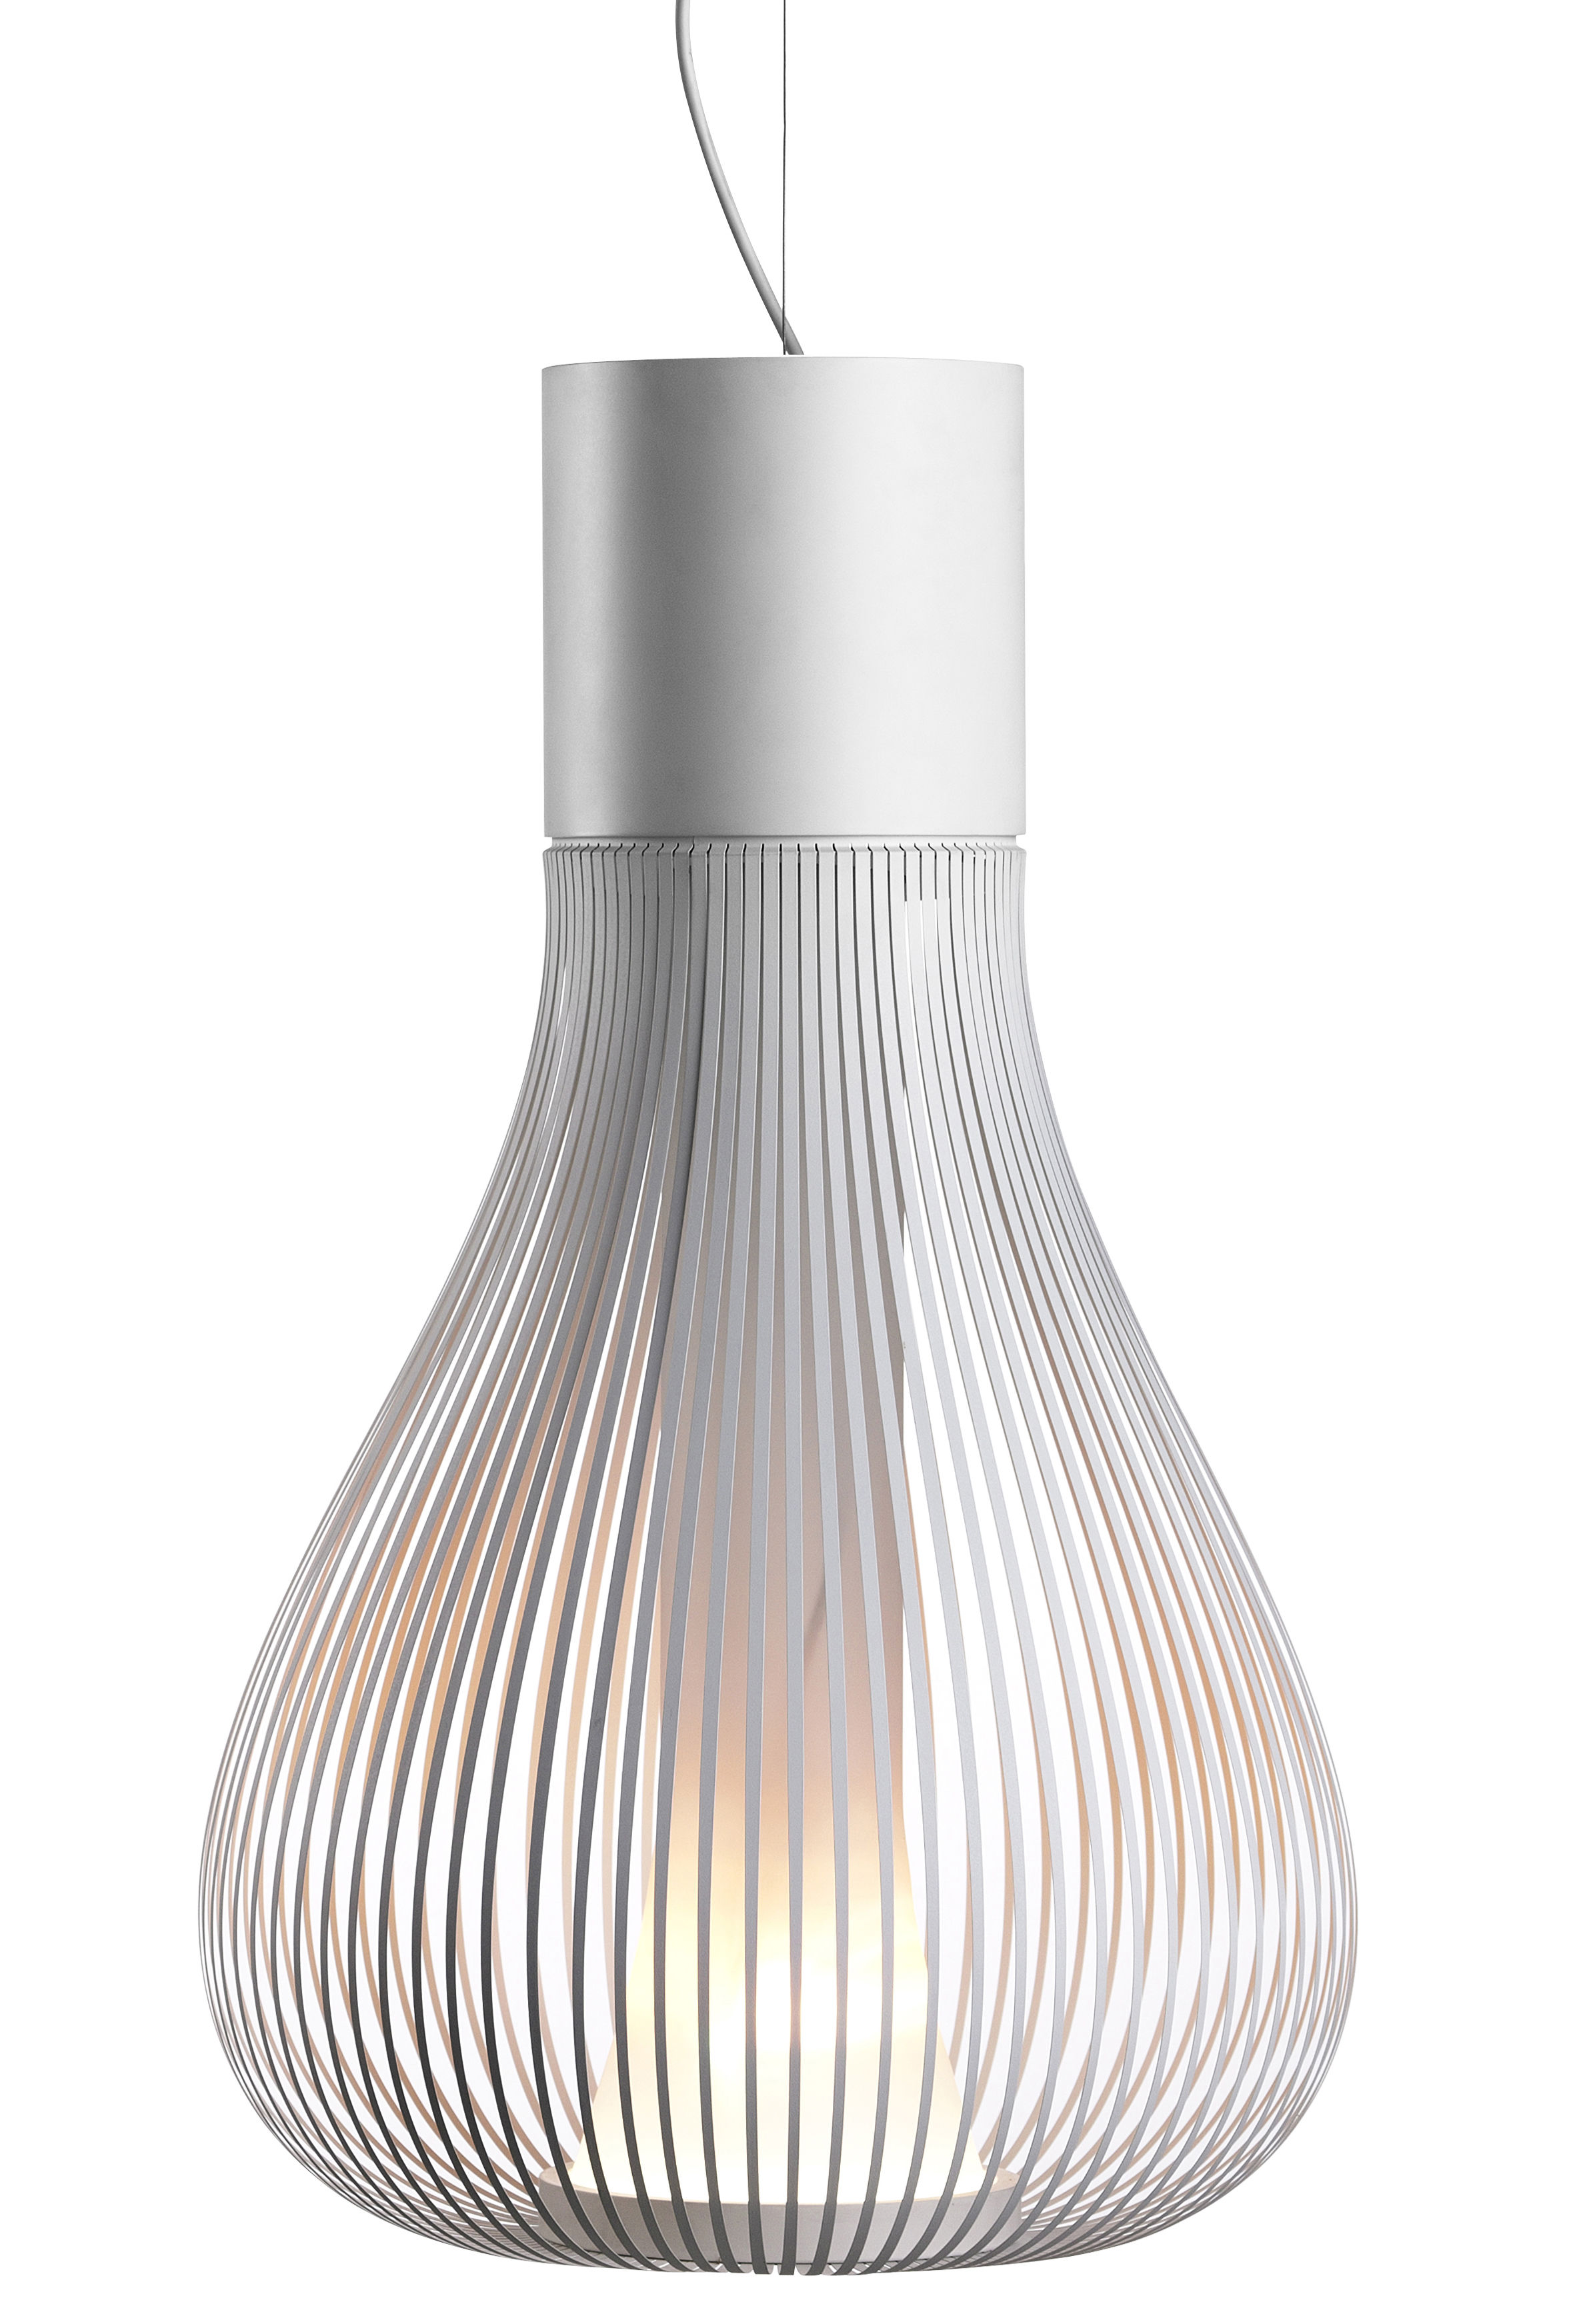 Lighting - Pendant Lighting - Chasen S2 Pendant - Modular by Flos - White - Stainless steel